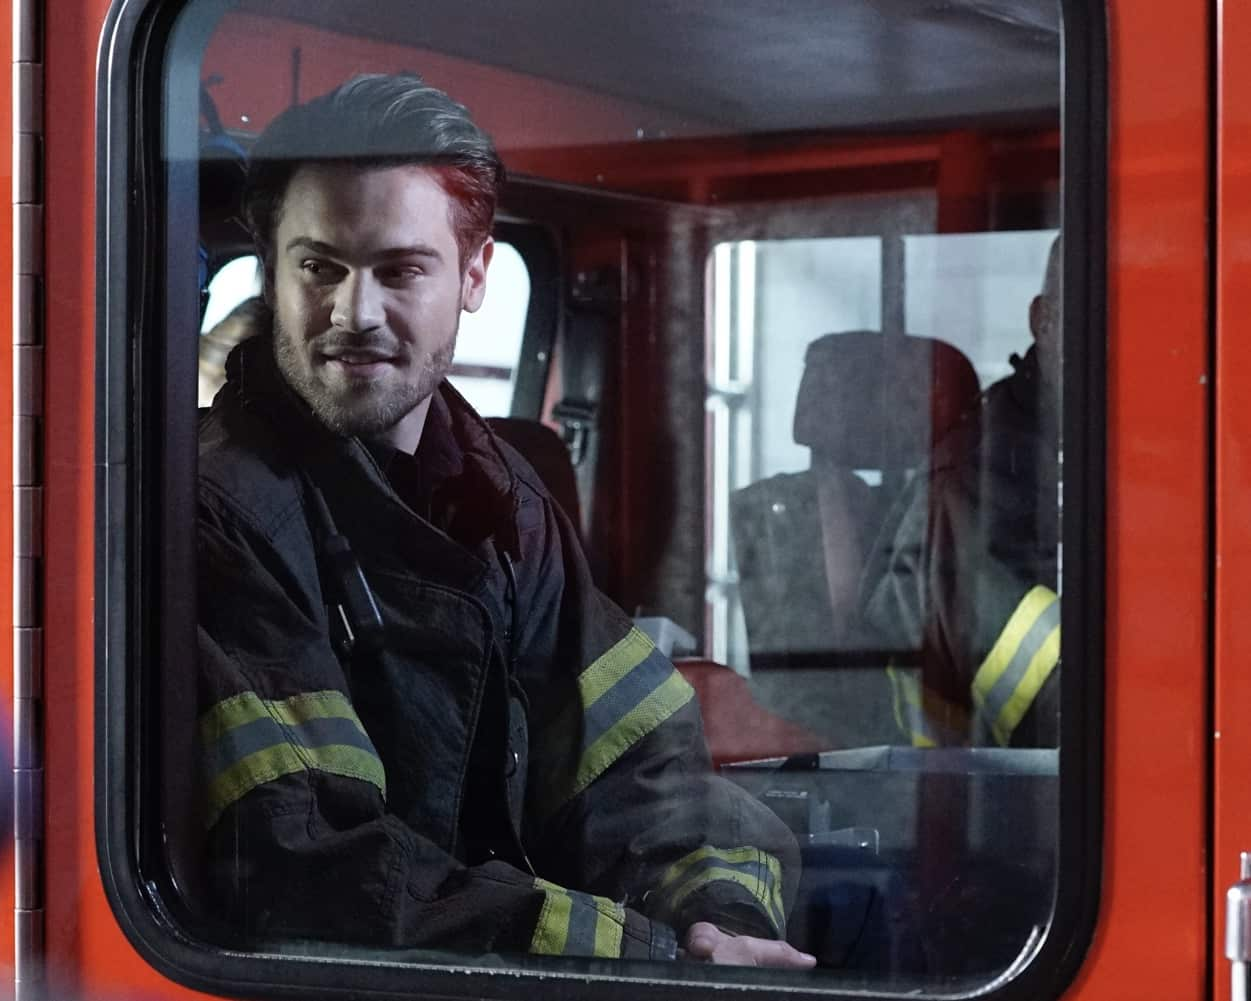 """STATION 19 - """"Learning to Fly"""" – The Station 19 crew is called to a cult gathering where they find their leader, Brother John, dancing on the roof and claiming he can fly. Meanwhile, Travis gets a surprise visit from his father, and Dean makes a difficult decision that could affect his career trajectory on an all-new episode of """"Station 19,"""" THURSDAY, MARCH 18 (8:00-9:00 p.m. EST), on ABC. (ABC/Kelsey McNeal) GREY DAMON"""